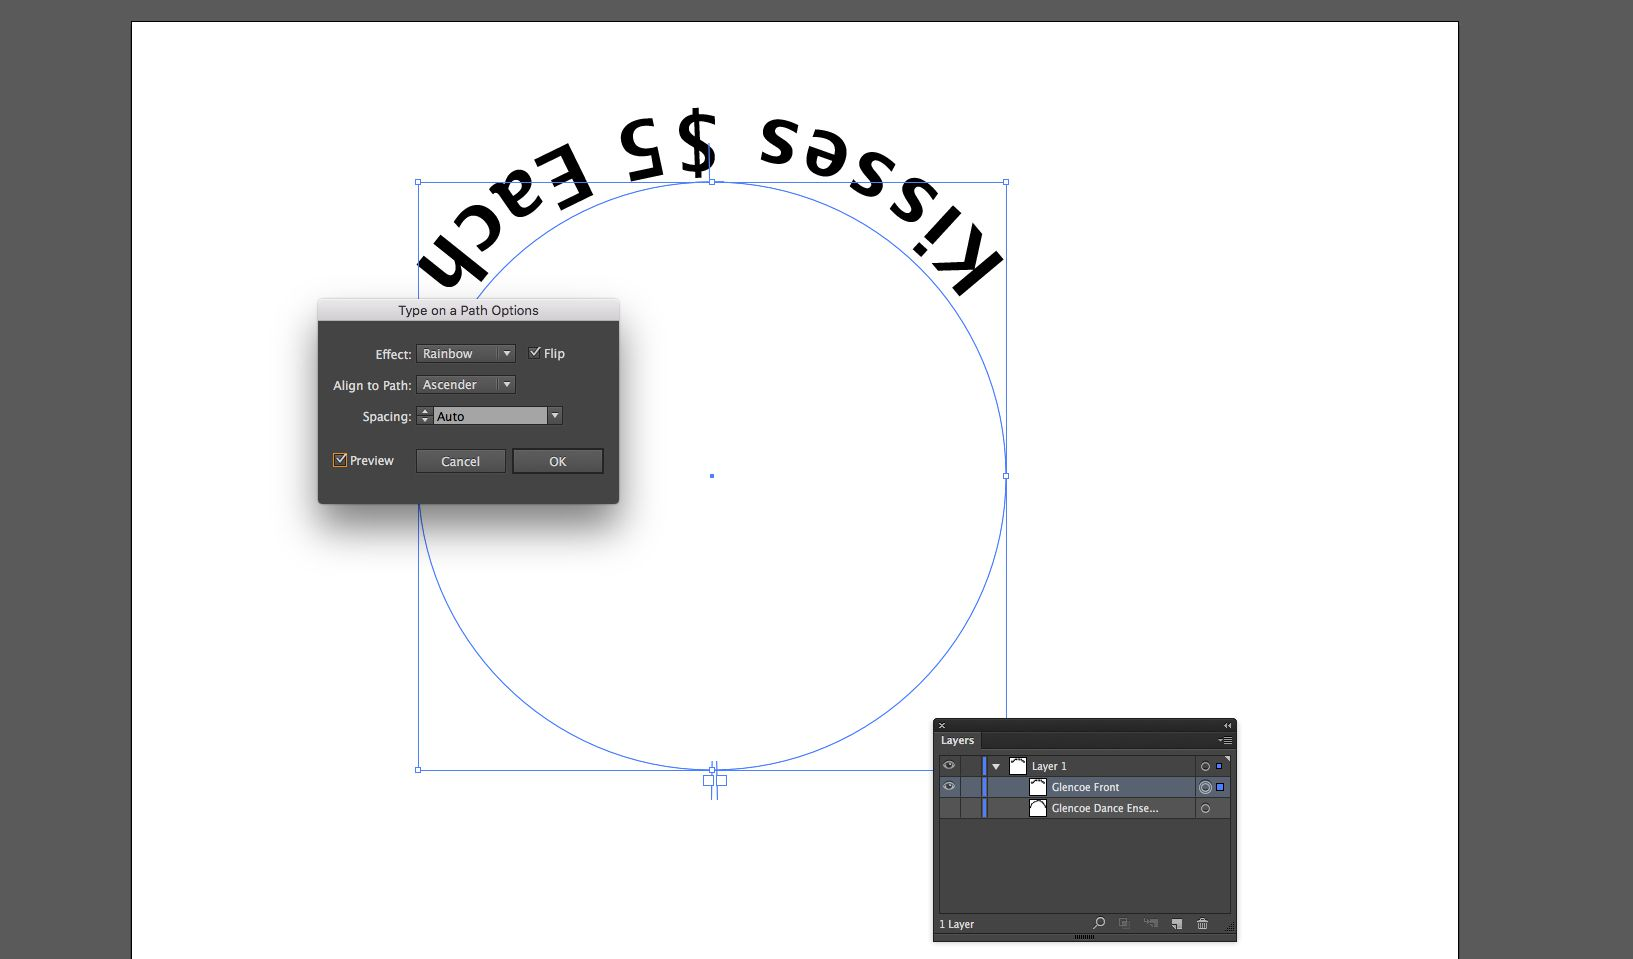 Use Type on a Path in Illustrator for Text in a Circle